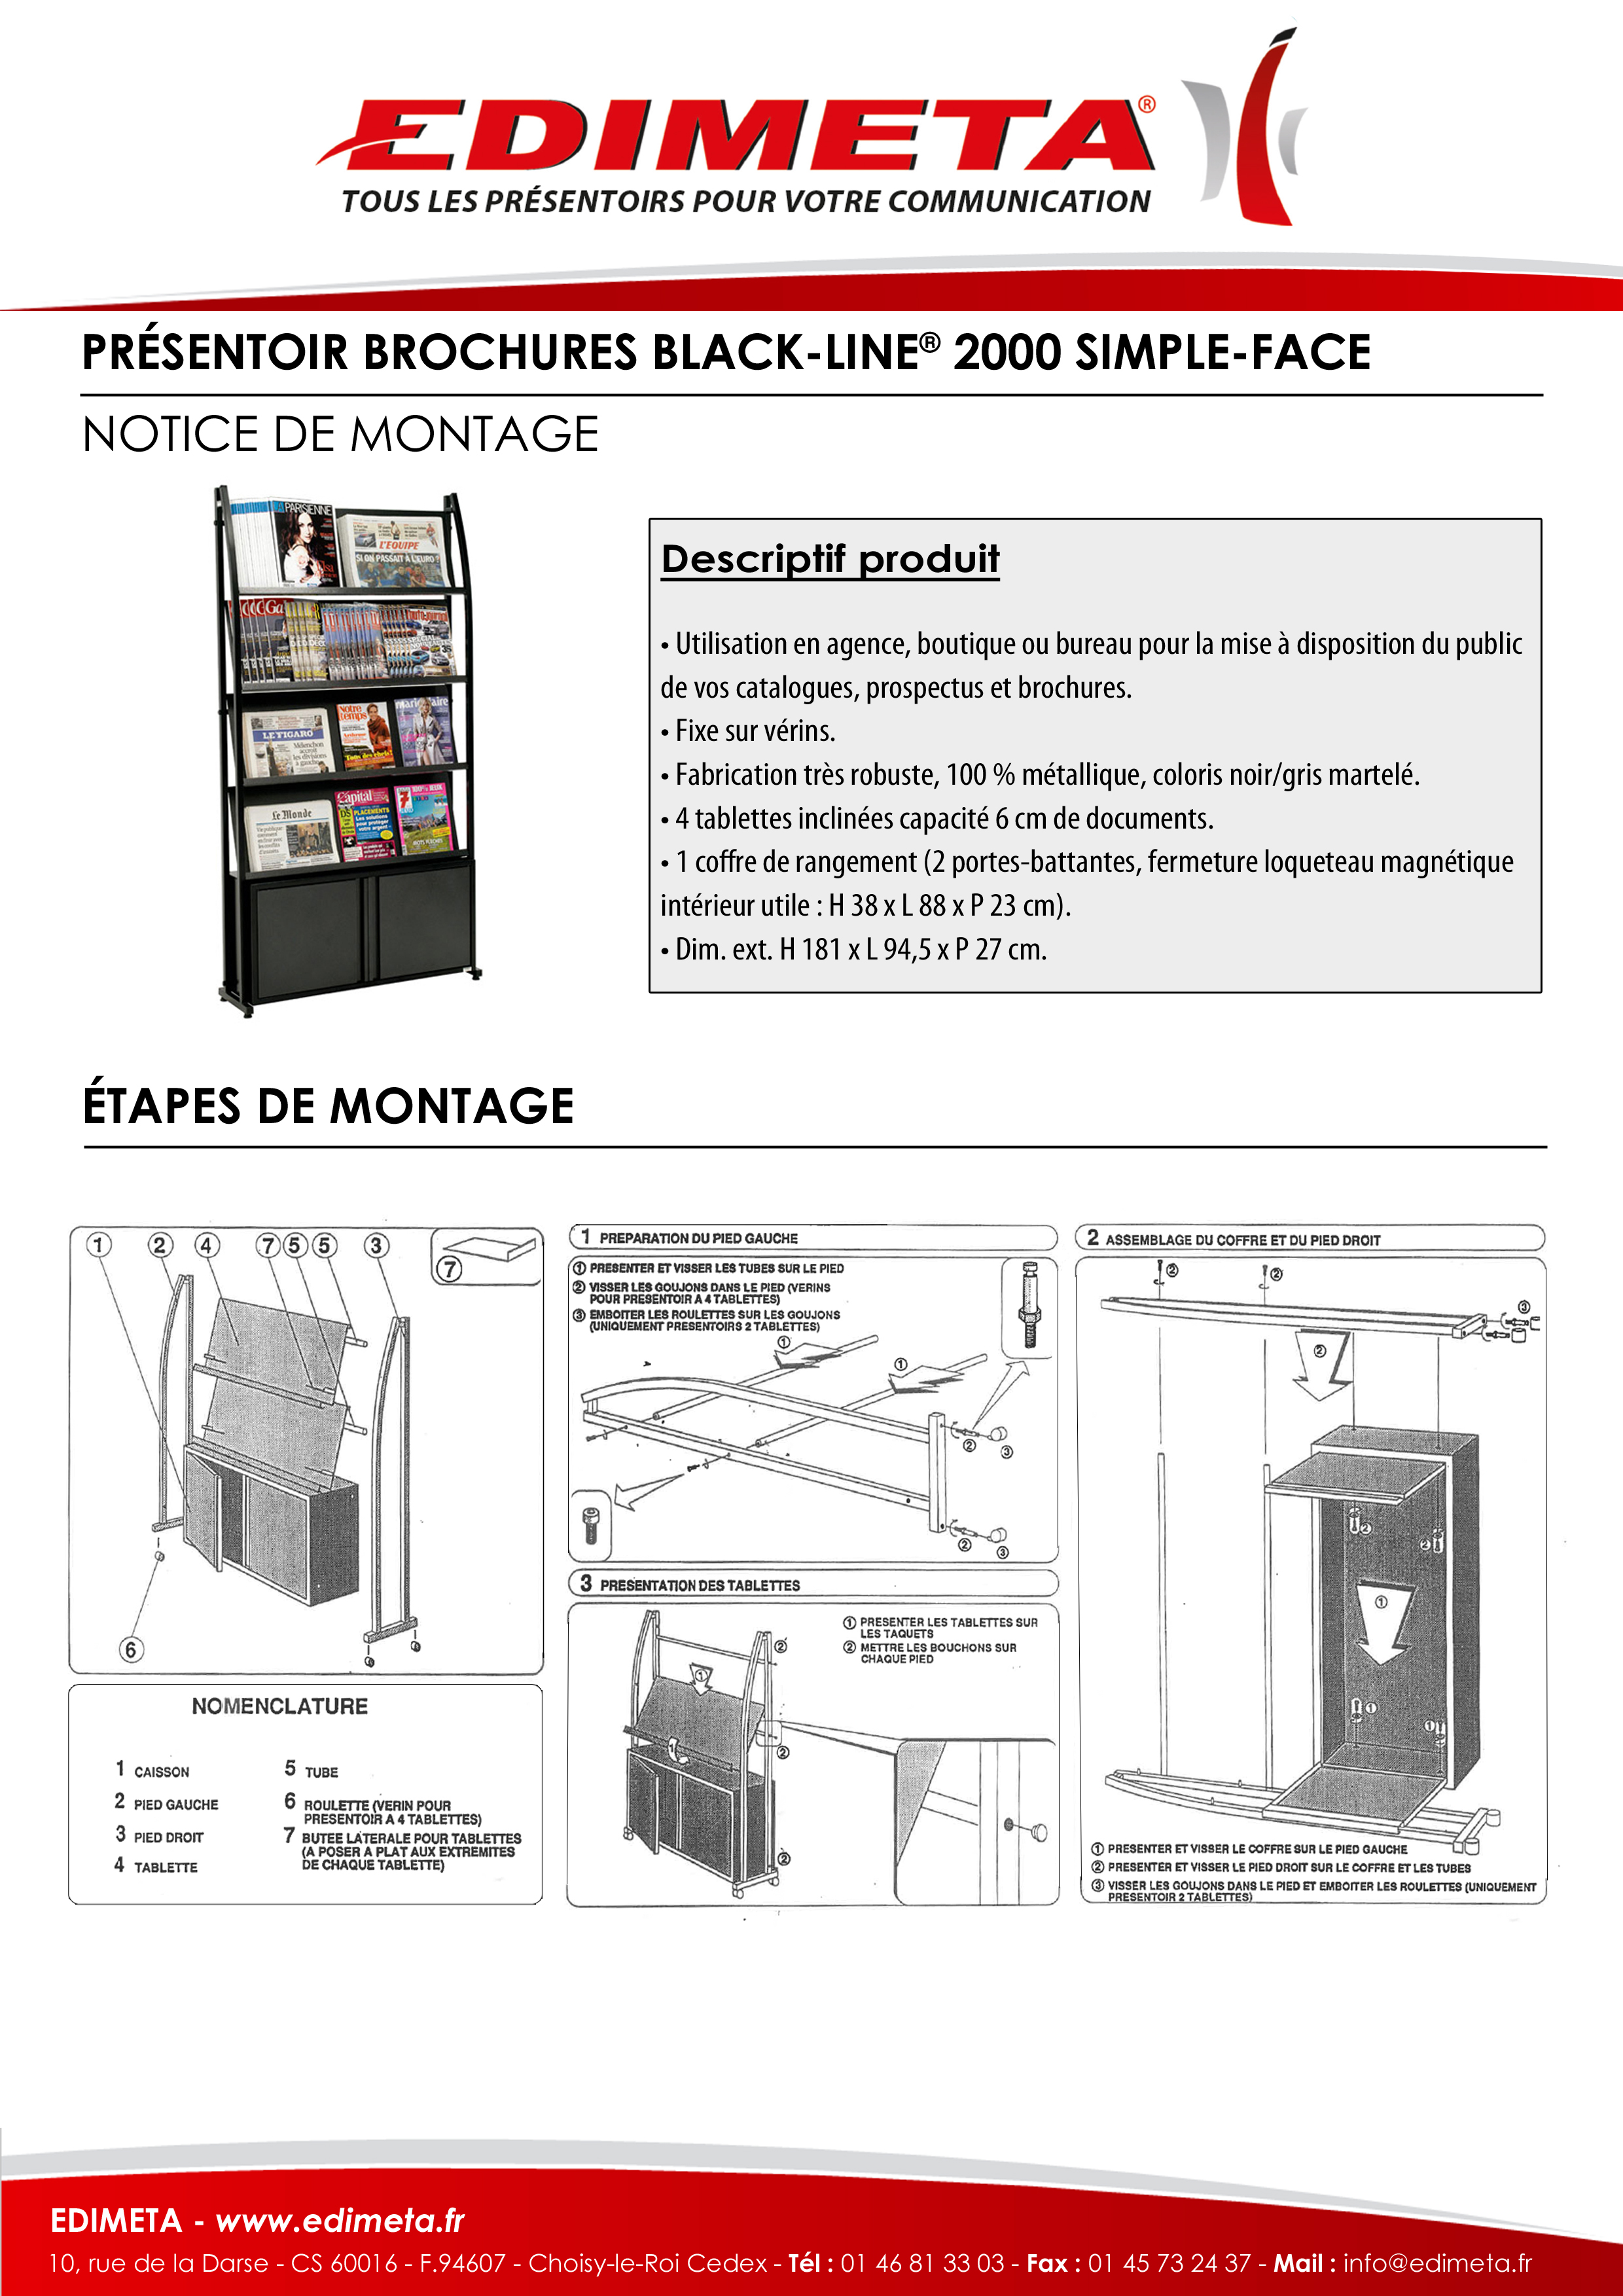 NOTICE DE MONTAGE : PRÉSENTOIRS BROCHURES BLACK-LINE® 2000 SIMPLE-FACE